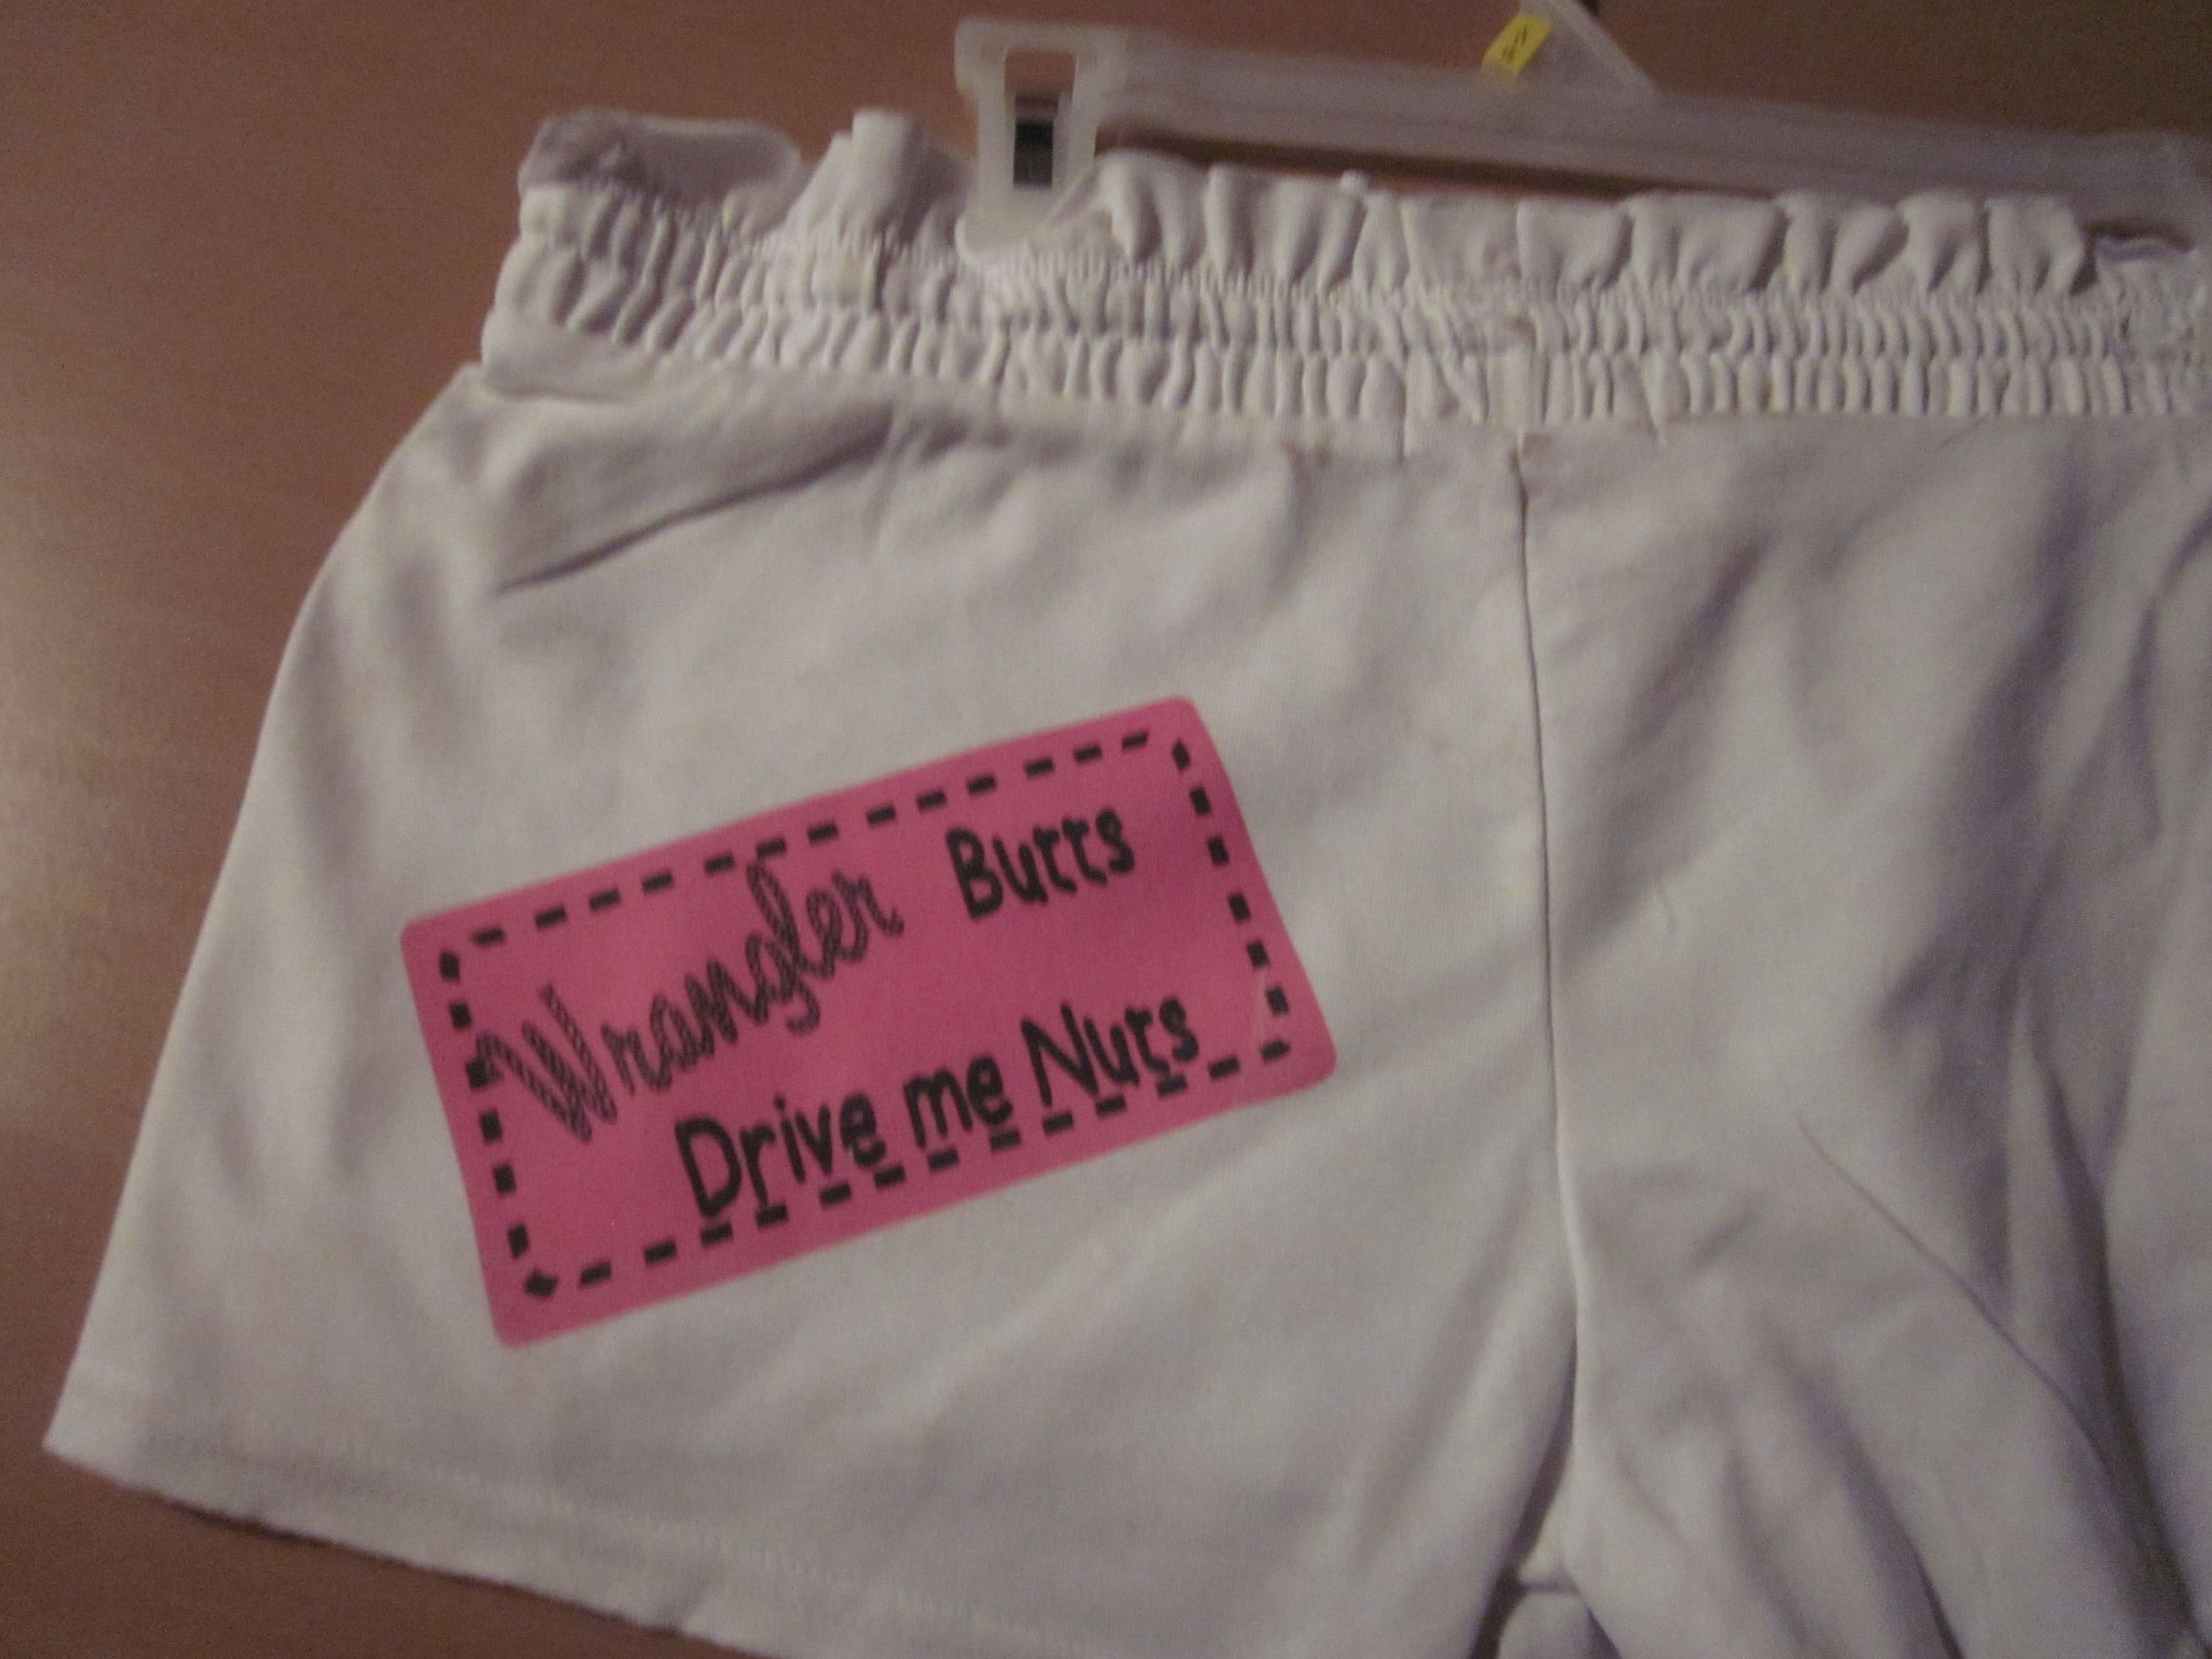 """""""Wrangler Butts drive me nuts""""  Transfer in Hot Pink  Can go on shorts, whatever"""